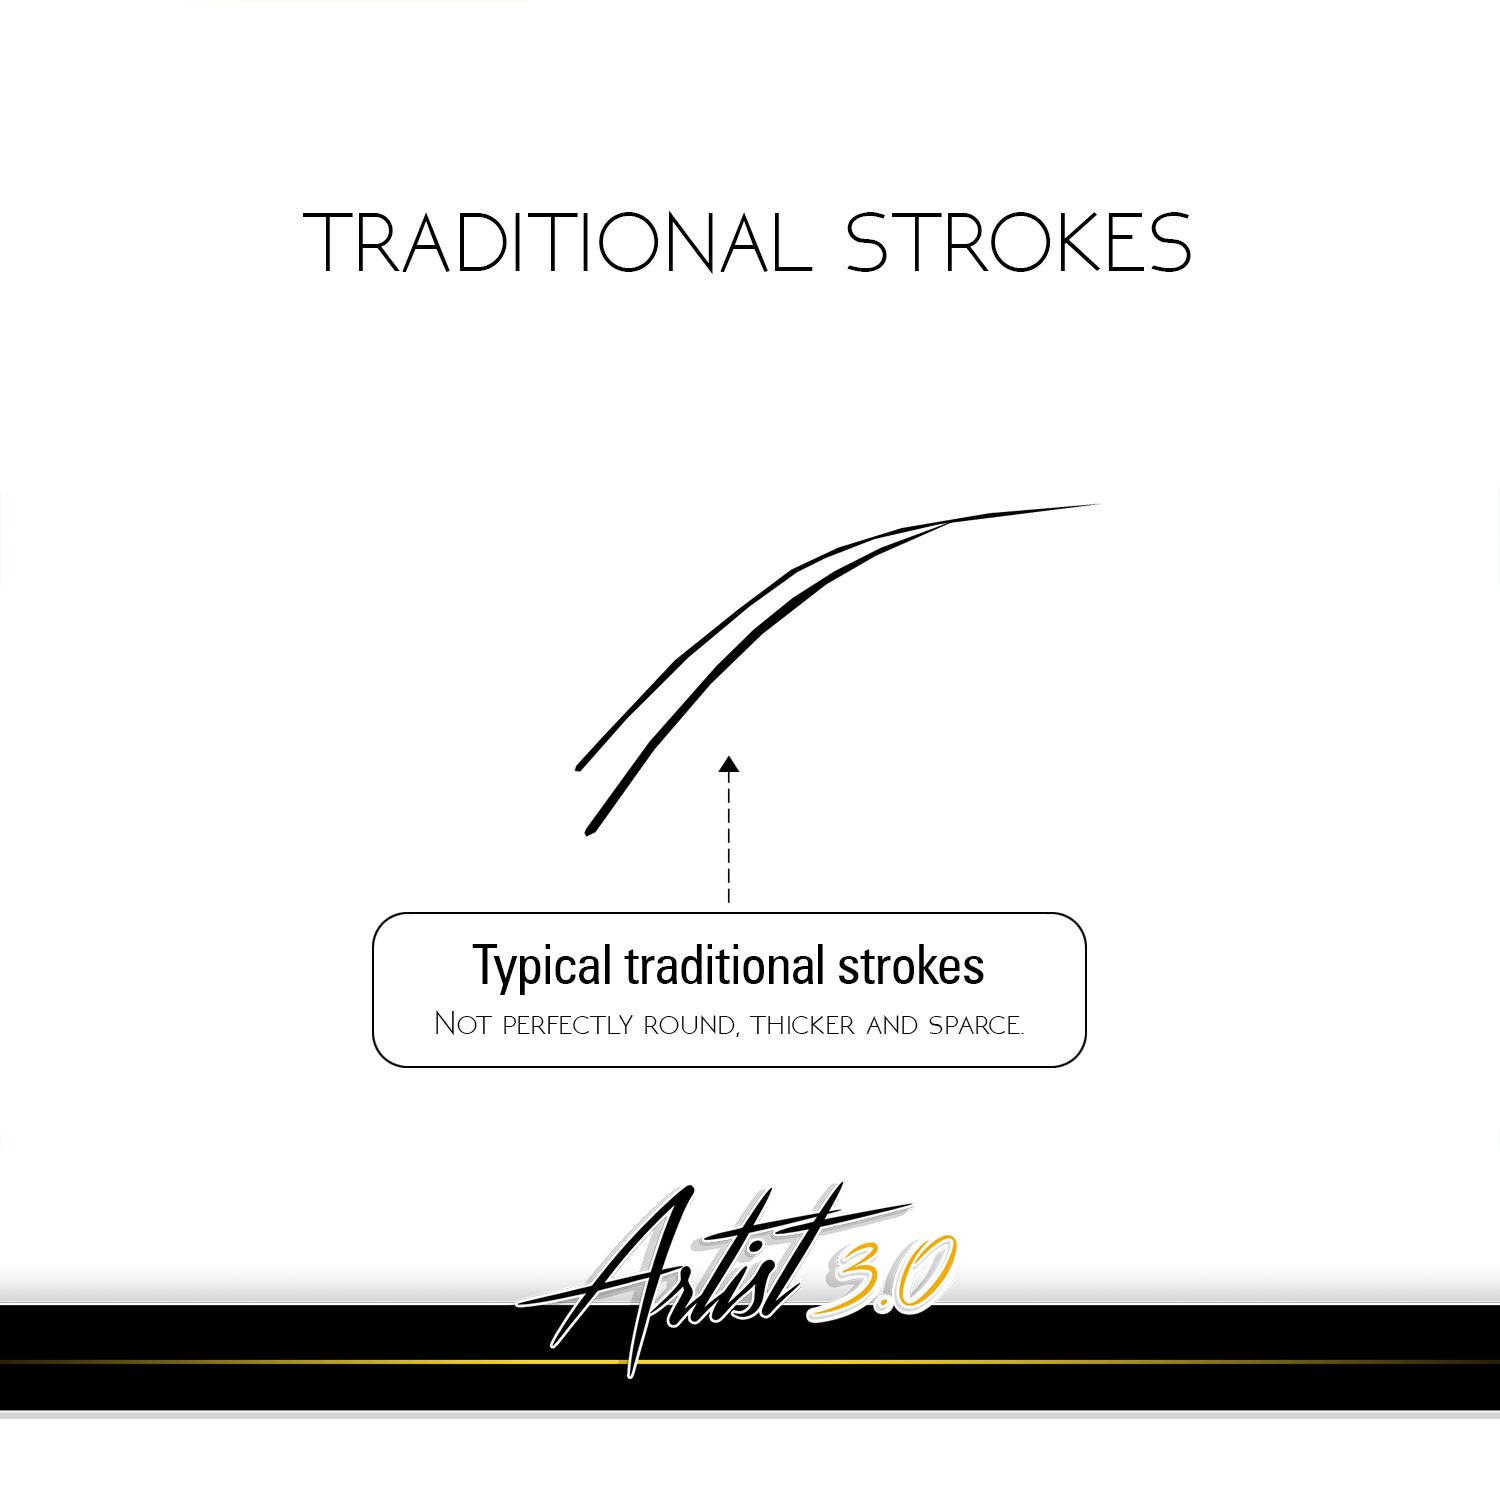 The problem with traditional strokes is their thickness and quite often also artist's inability to make those round. Very often also lines can be made durable by cutting the needles too deep into skin. Even if an artist makes flawless perfect traditional strokes the result can still be detected and can be detected.